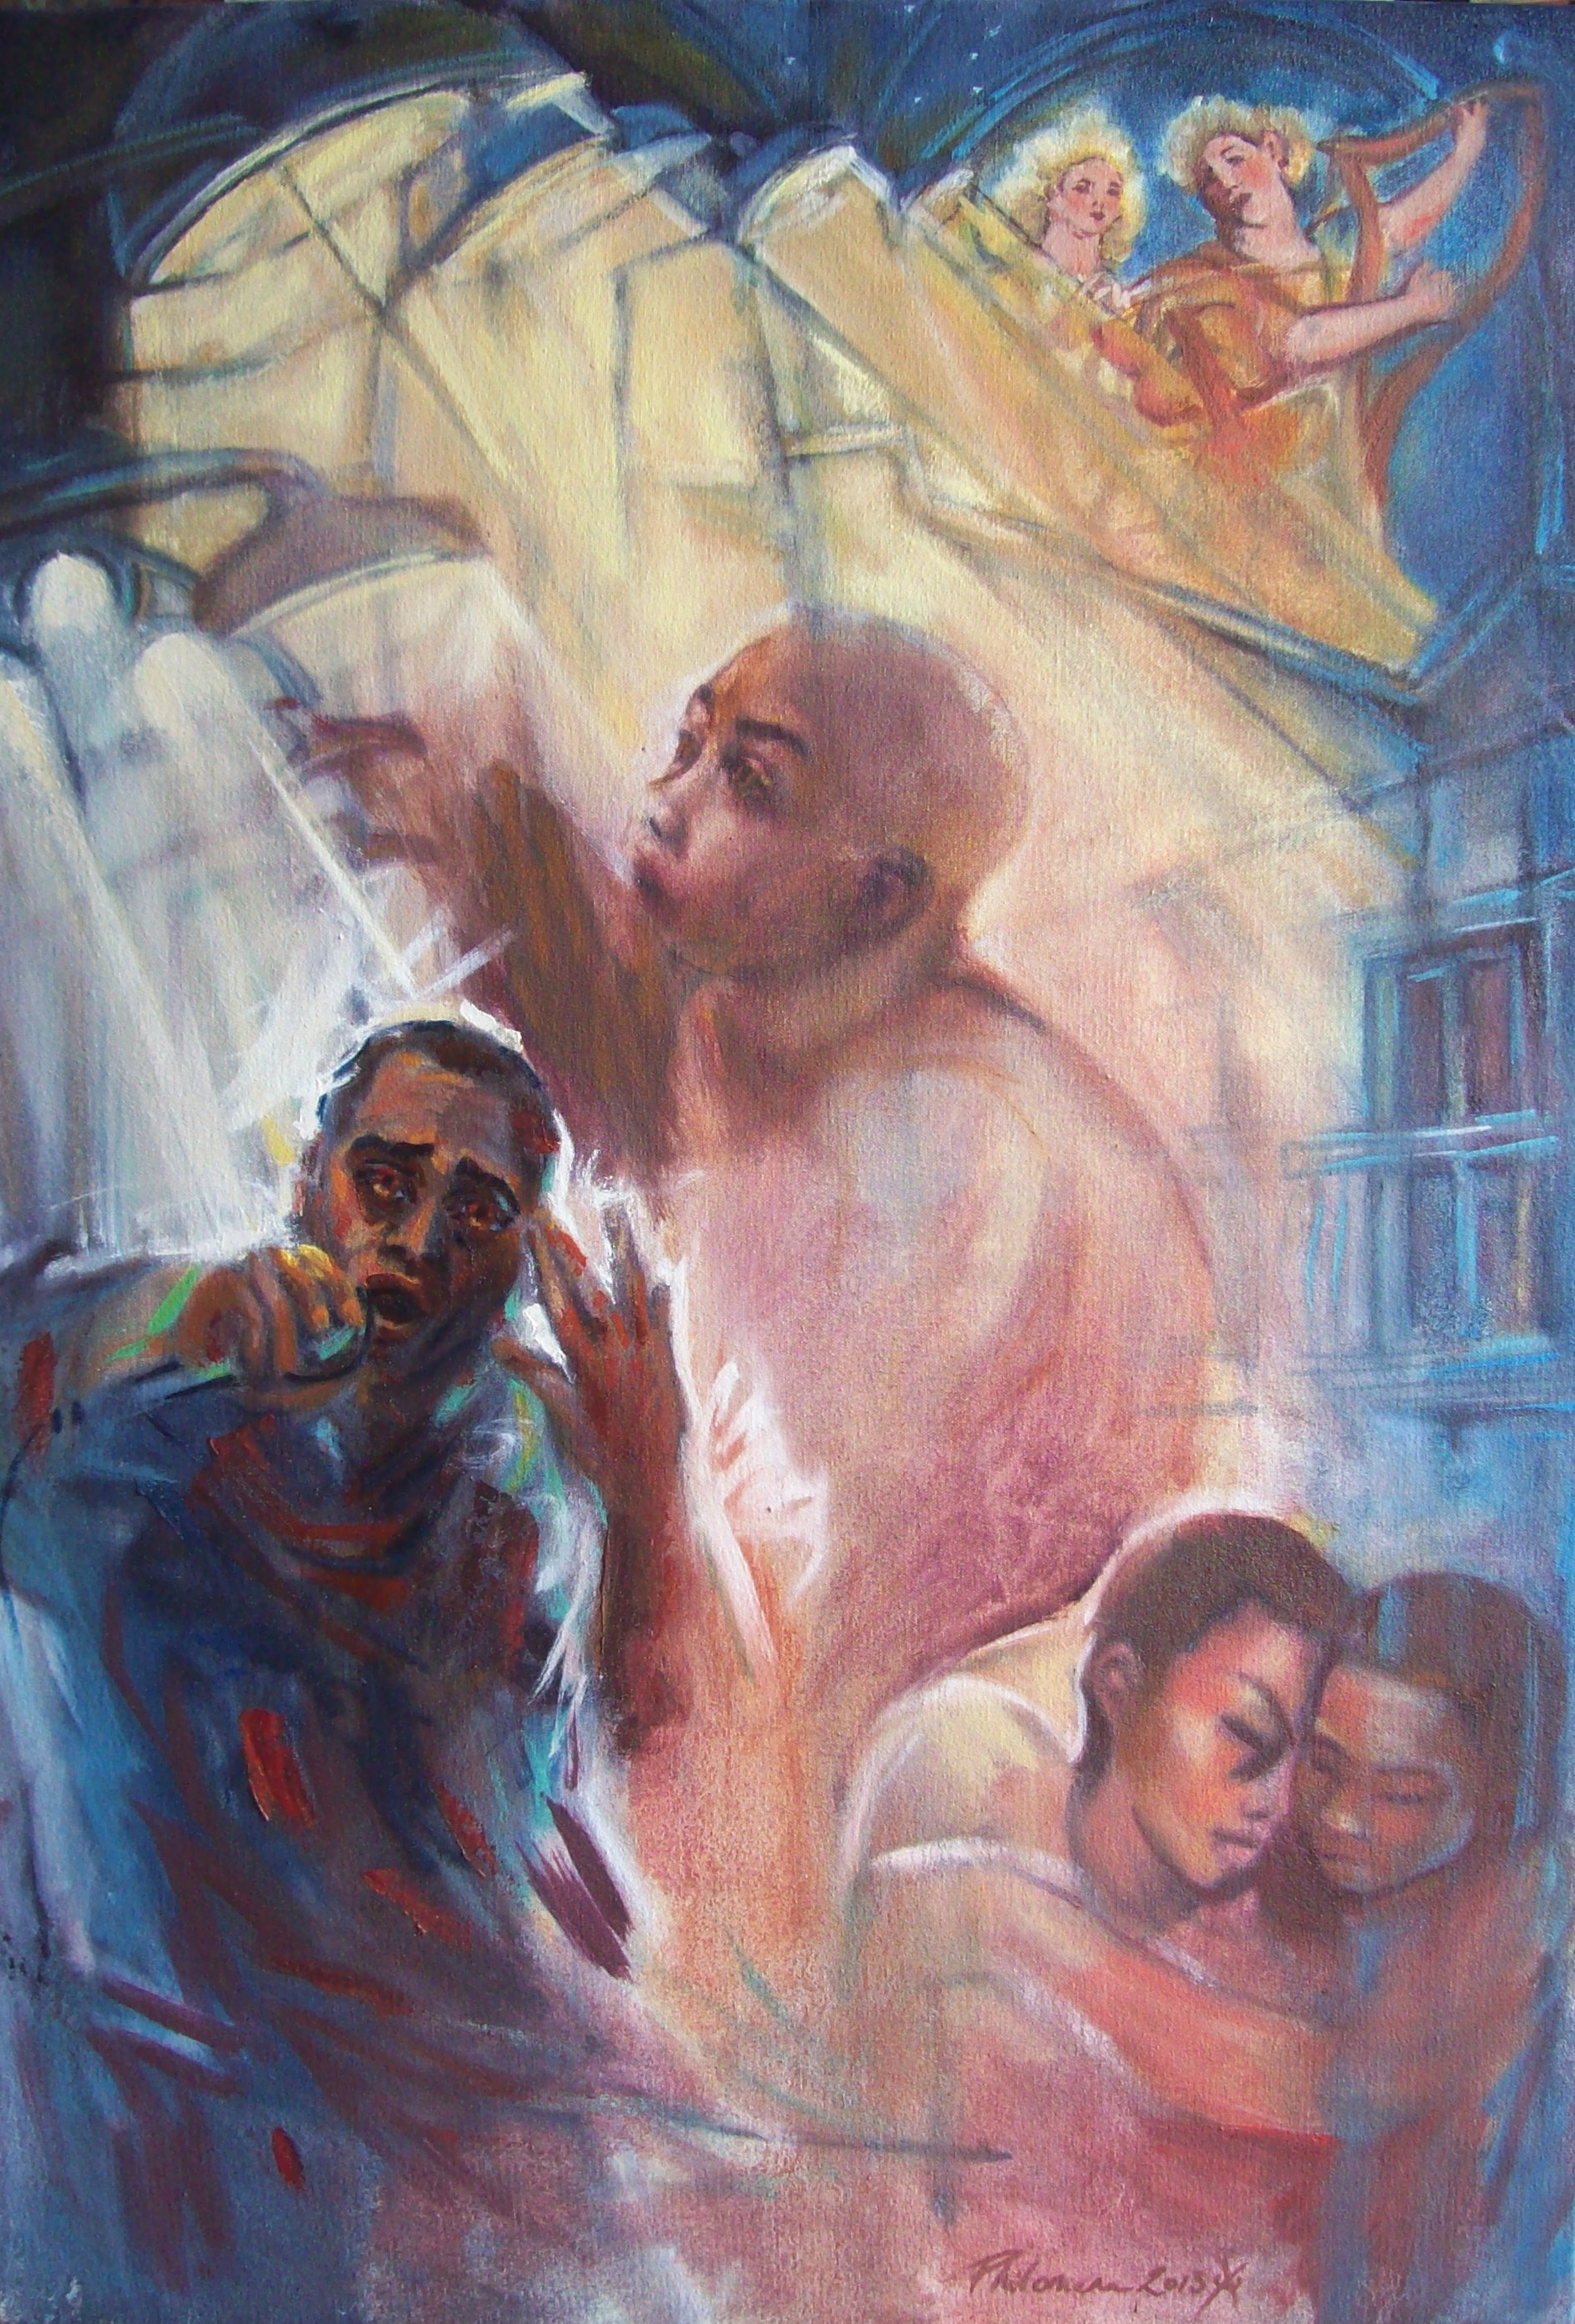 A narrative oil painting about song, singers and angels